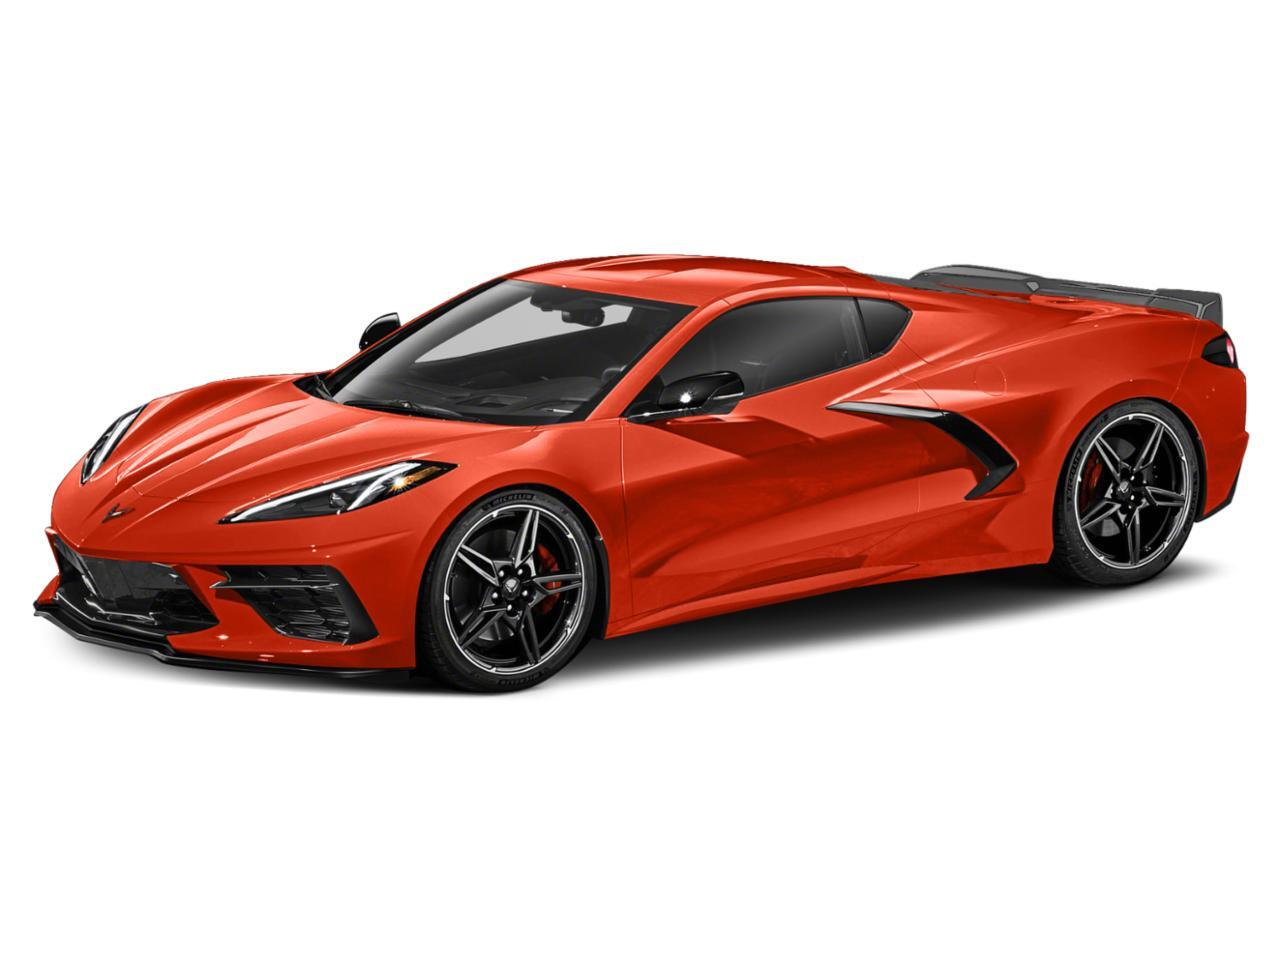 2020 Chevrolet Corvette Stingray Andrews TX